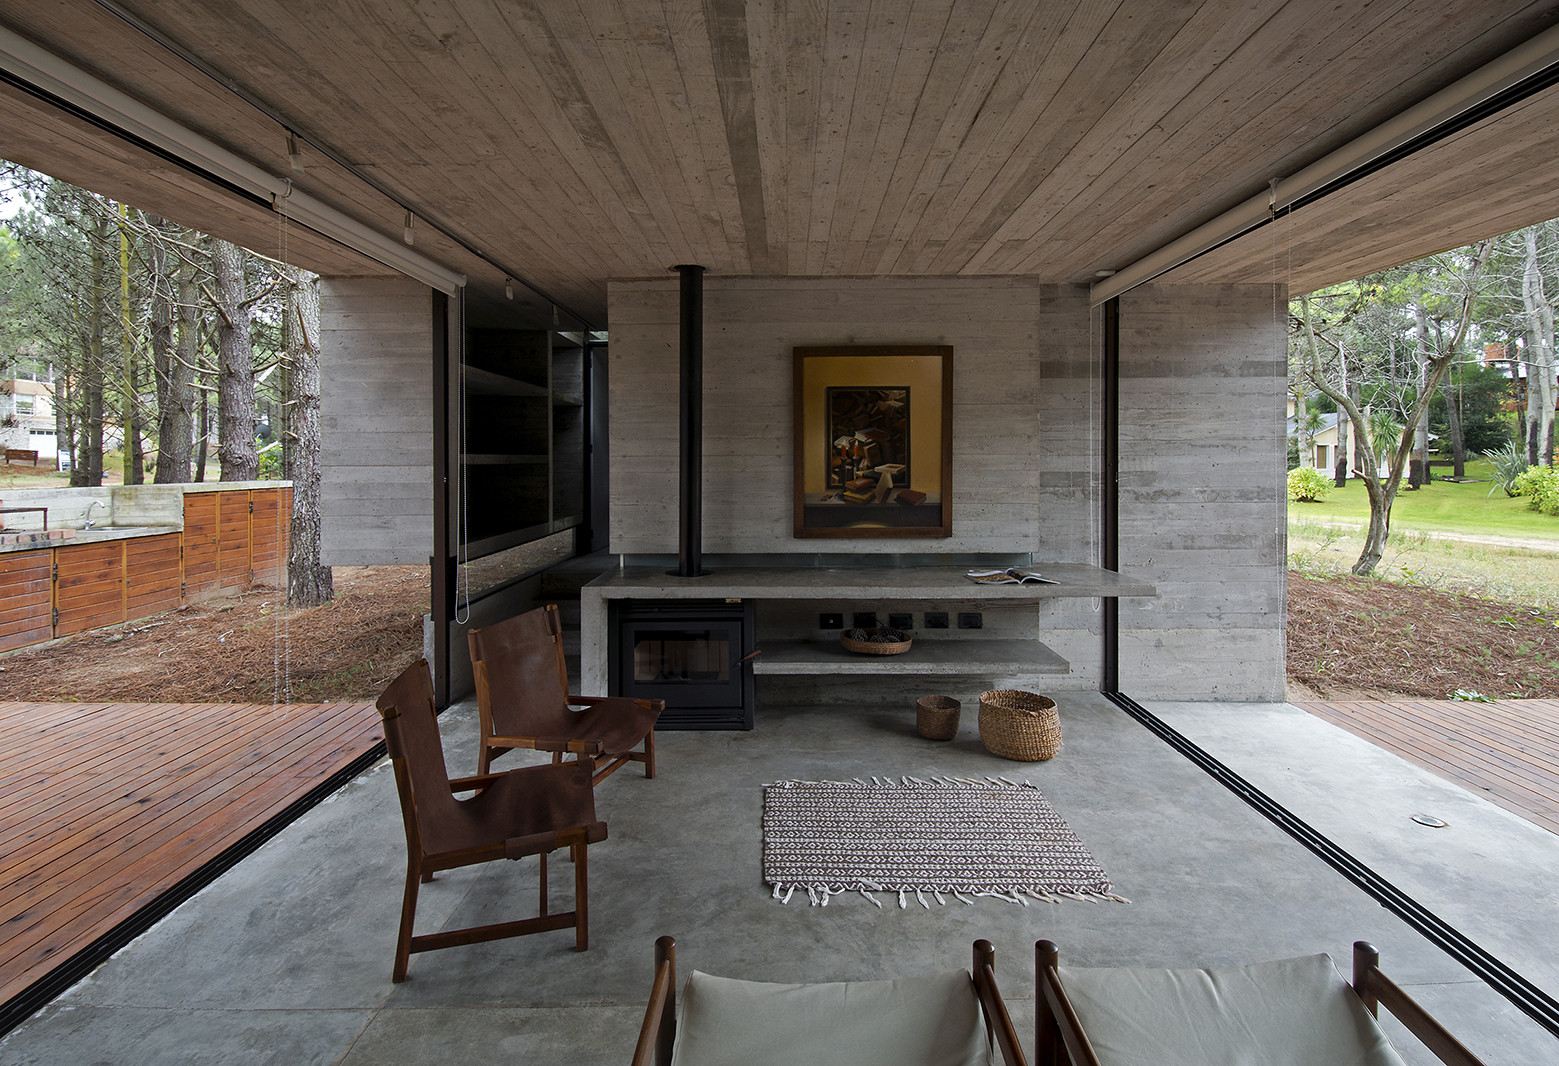 Gallery of SV House  Luciano Kruk Arquitectos  4